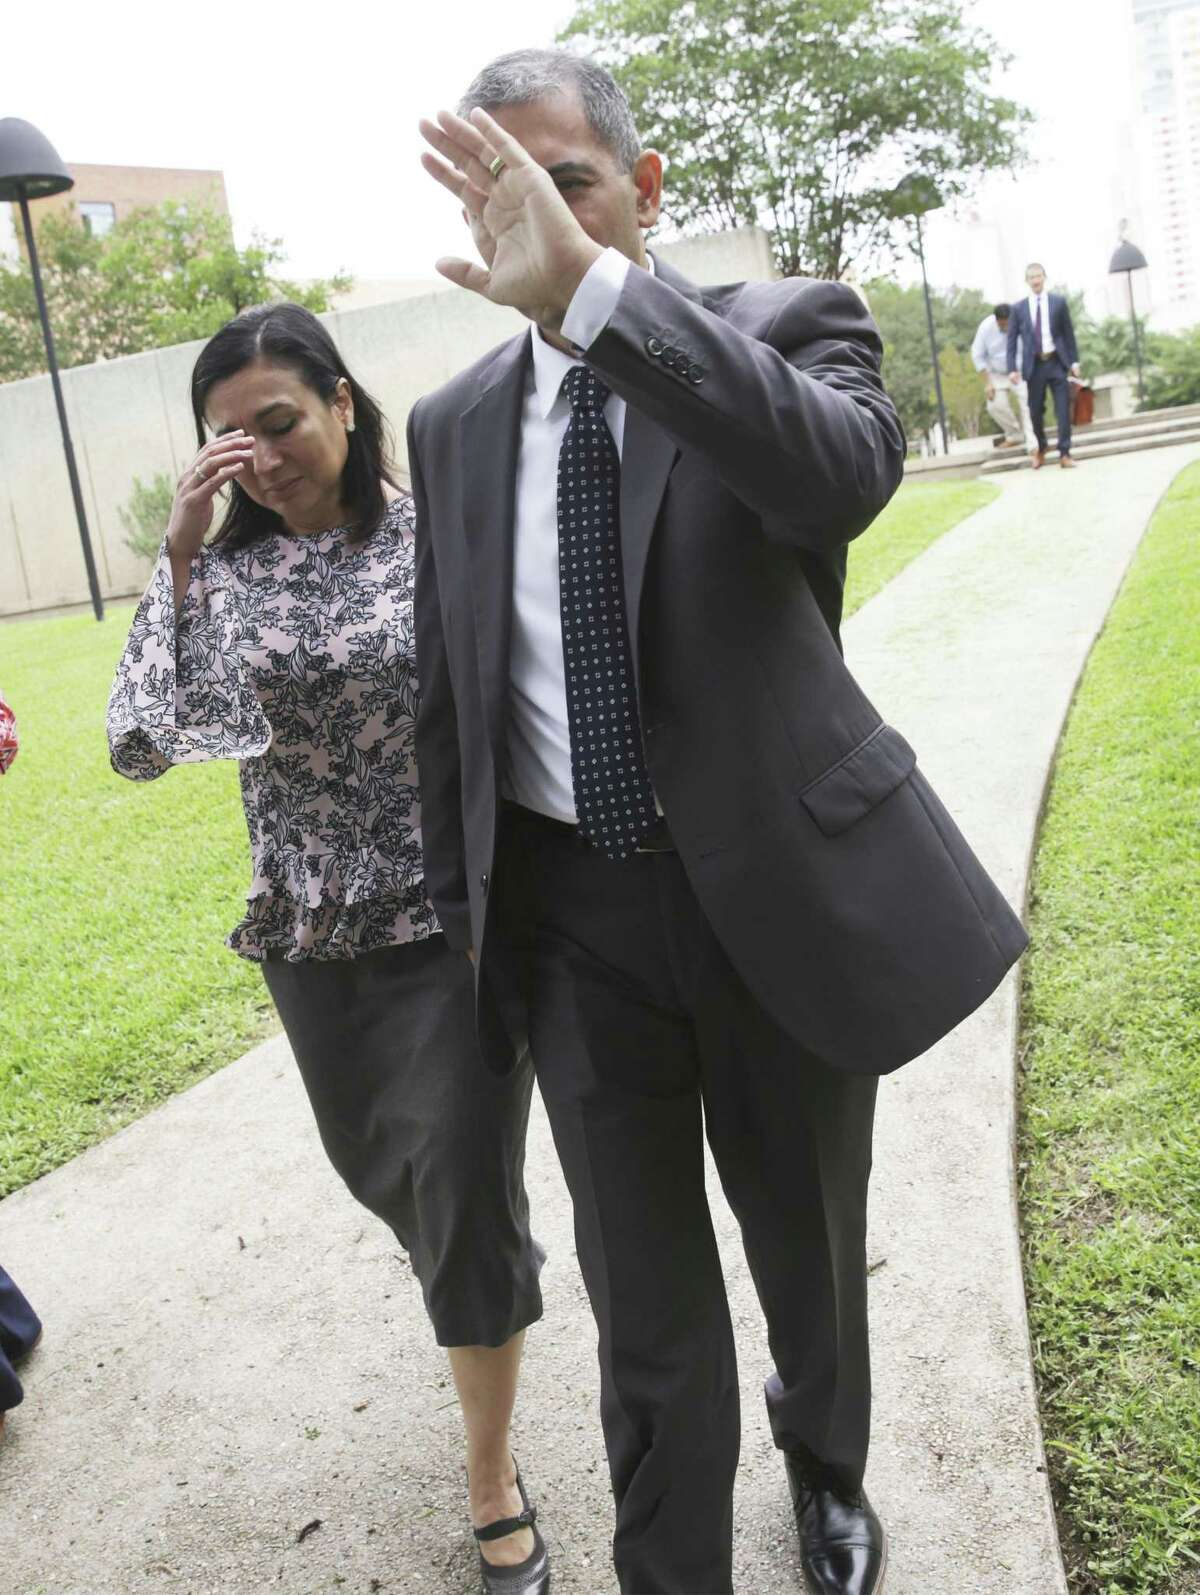 Enrique Gonzalez walks from the Federal Courthouse with his wife Gladys Gonzalez on June 12, 2019 after receiving a guilty verdict for lewd behavior charges aboard an airliner earlier this year.